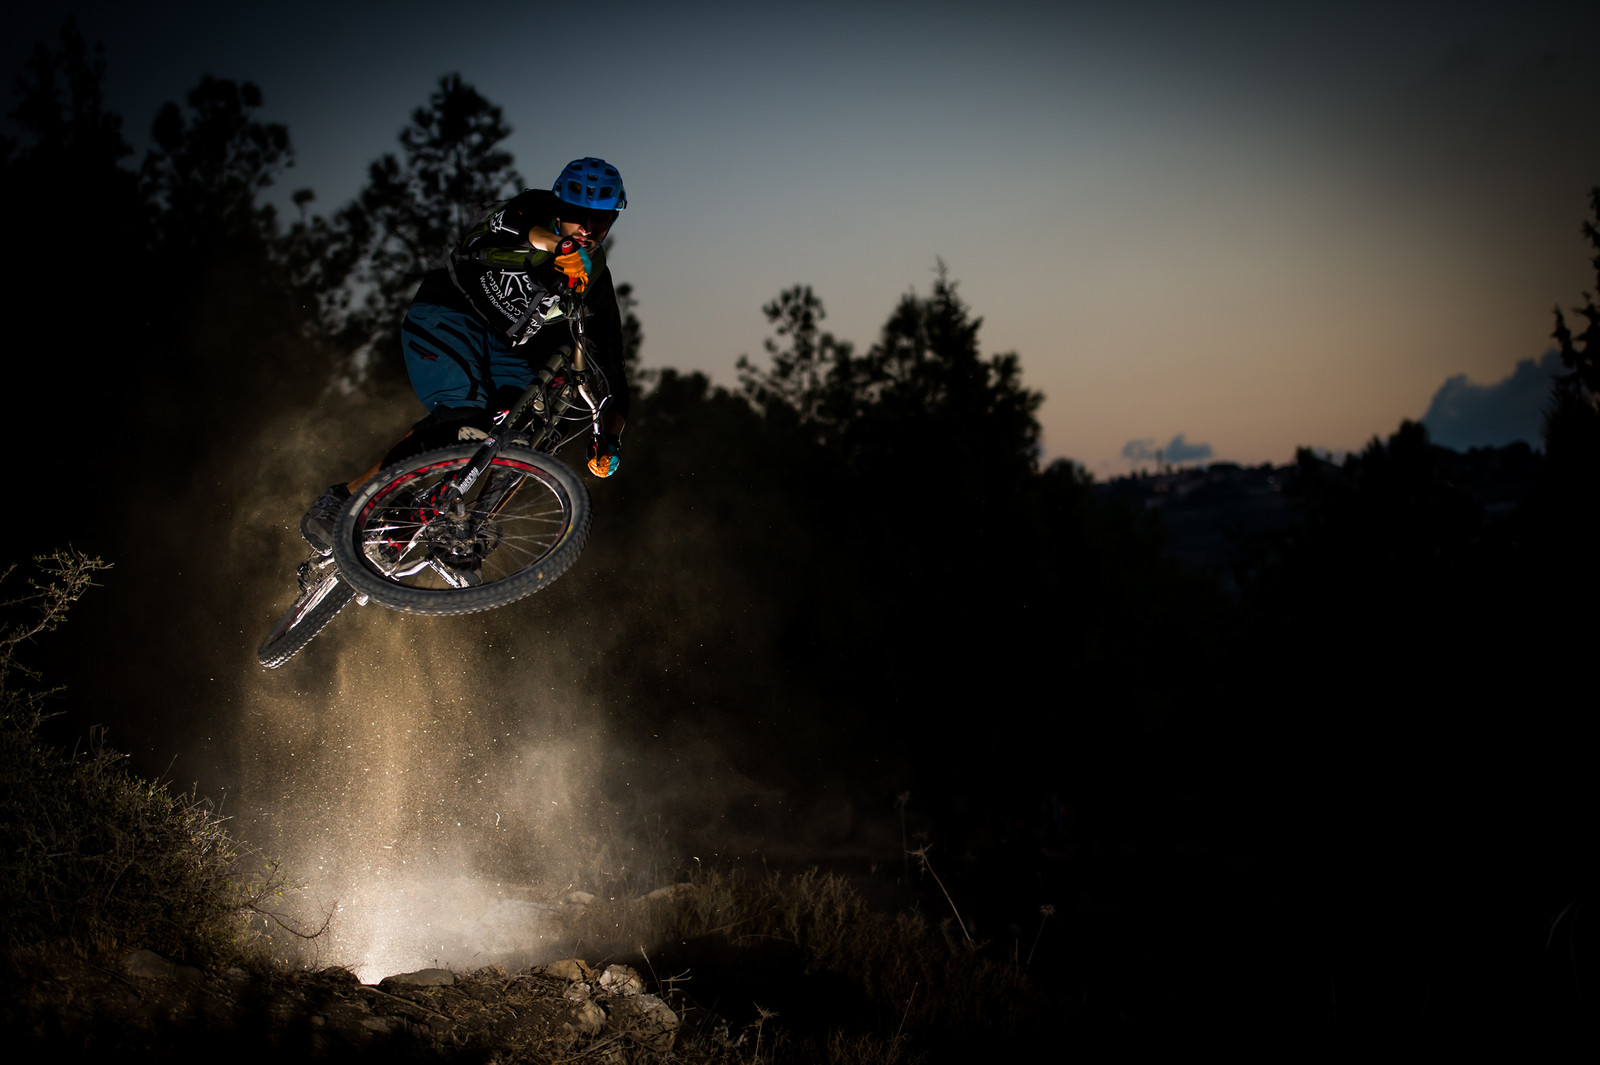 Fun with Flash - iceman2058 - Mountain Biking Pictures - Vital MTB